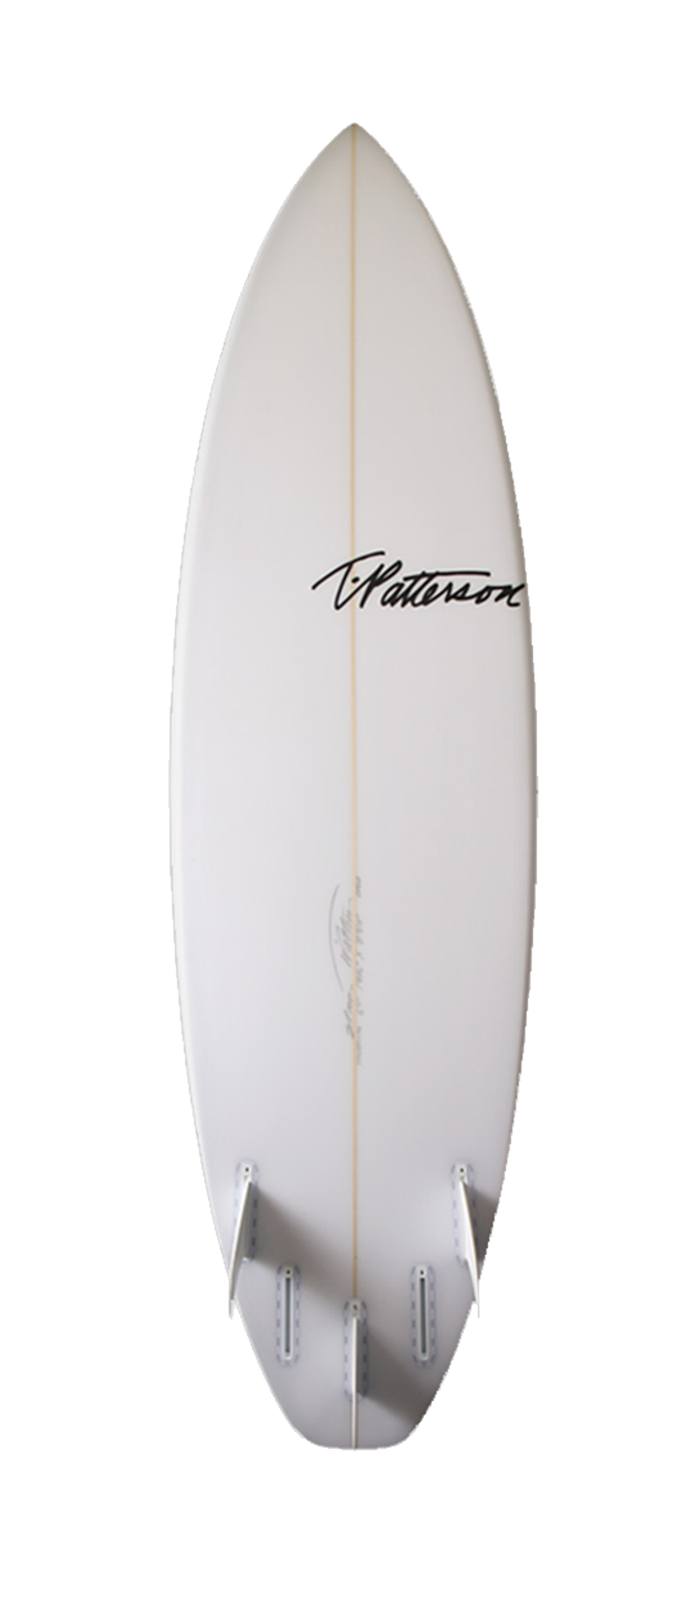 XXX surfboard model bottom